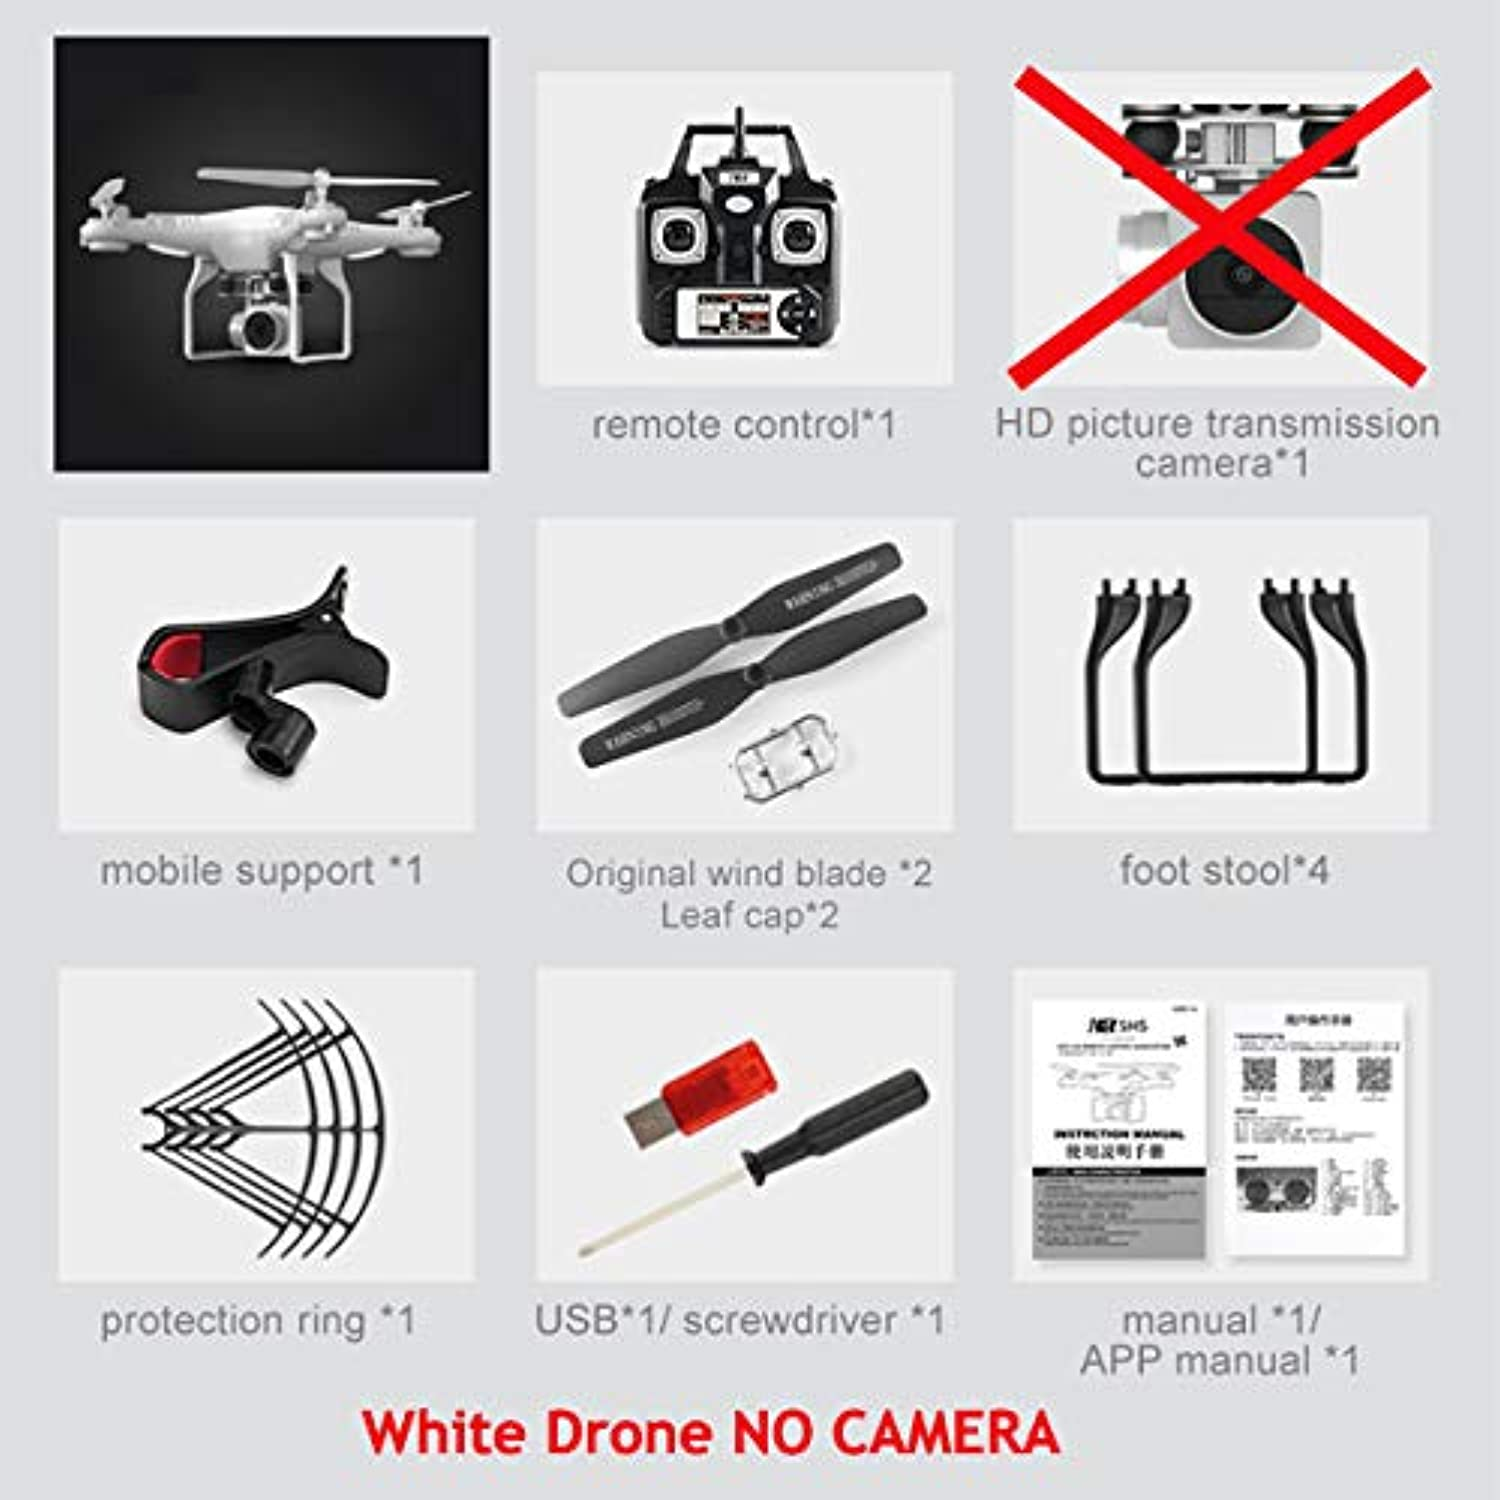 Generic SH5H Dron Quadrocopter FPV Drones with Camera HD Quadcopters with WiFi Camera RC Helicopter Remote Control Toys VS Syma x5c White NO Camera